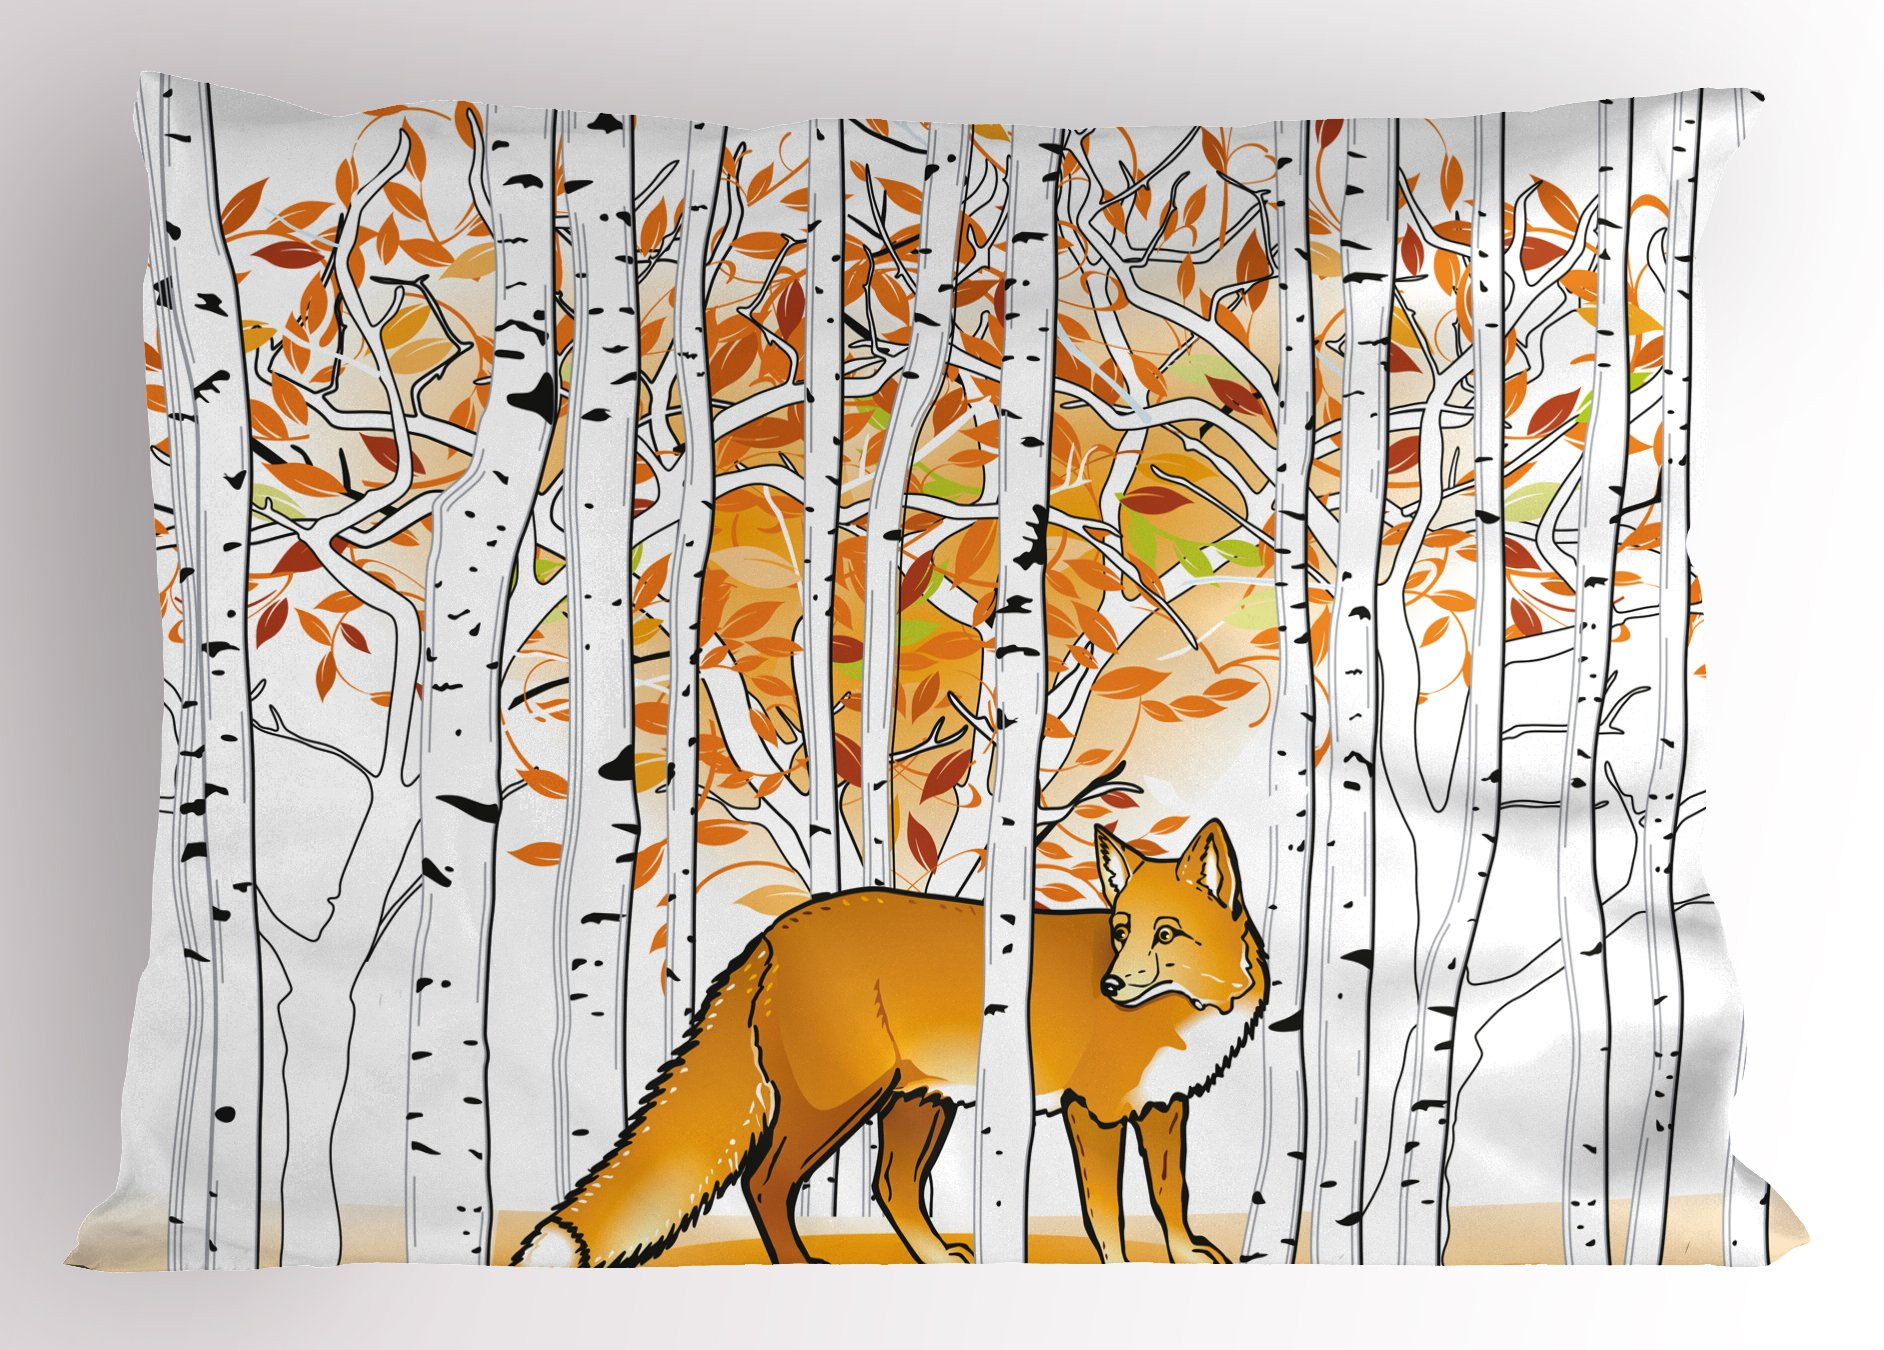 Ambesonne Hunting Decor Pillow Sham, Fox Hunting in Autumn Forest Birch Trees Rustic Wilderness Animal, Decorative Standard Queen Size Printed Pillowcase, 30 X 20 inches, Orange White Black by Ambesonne